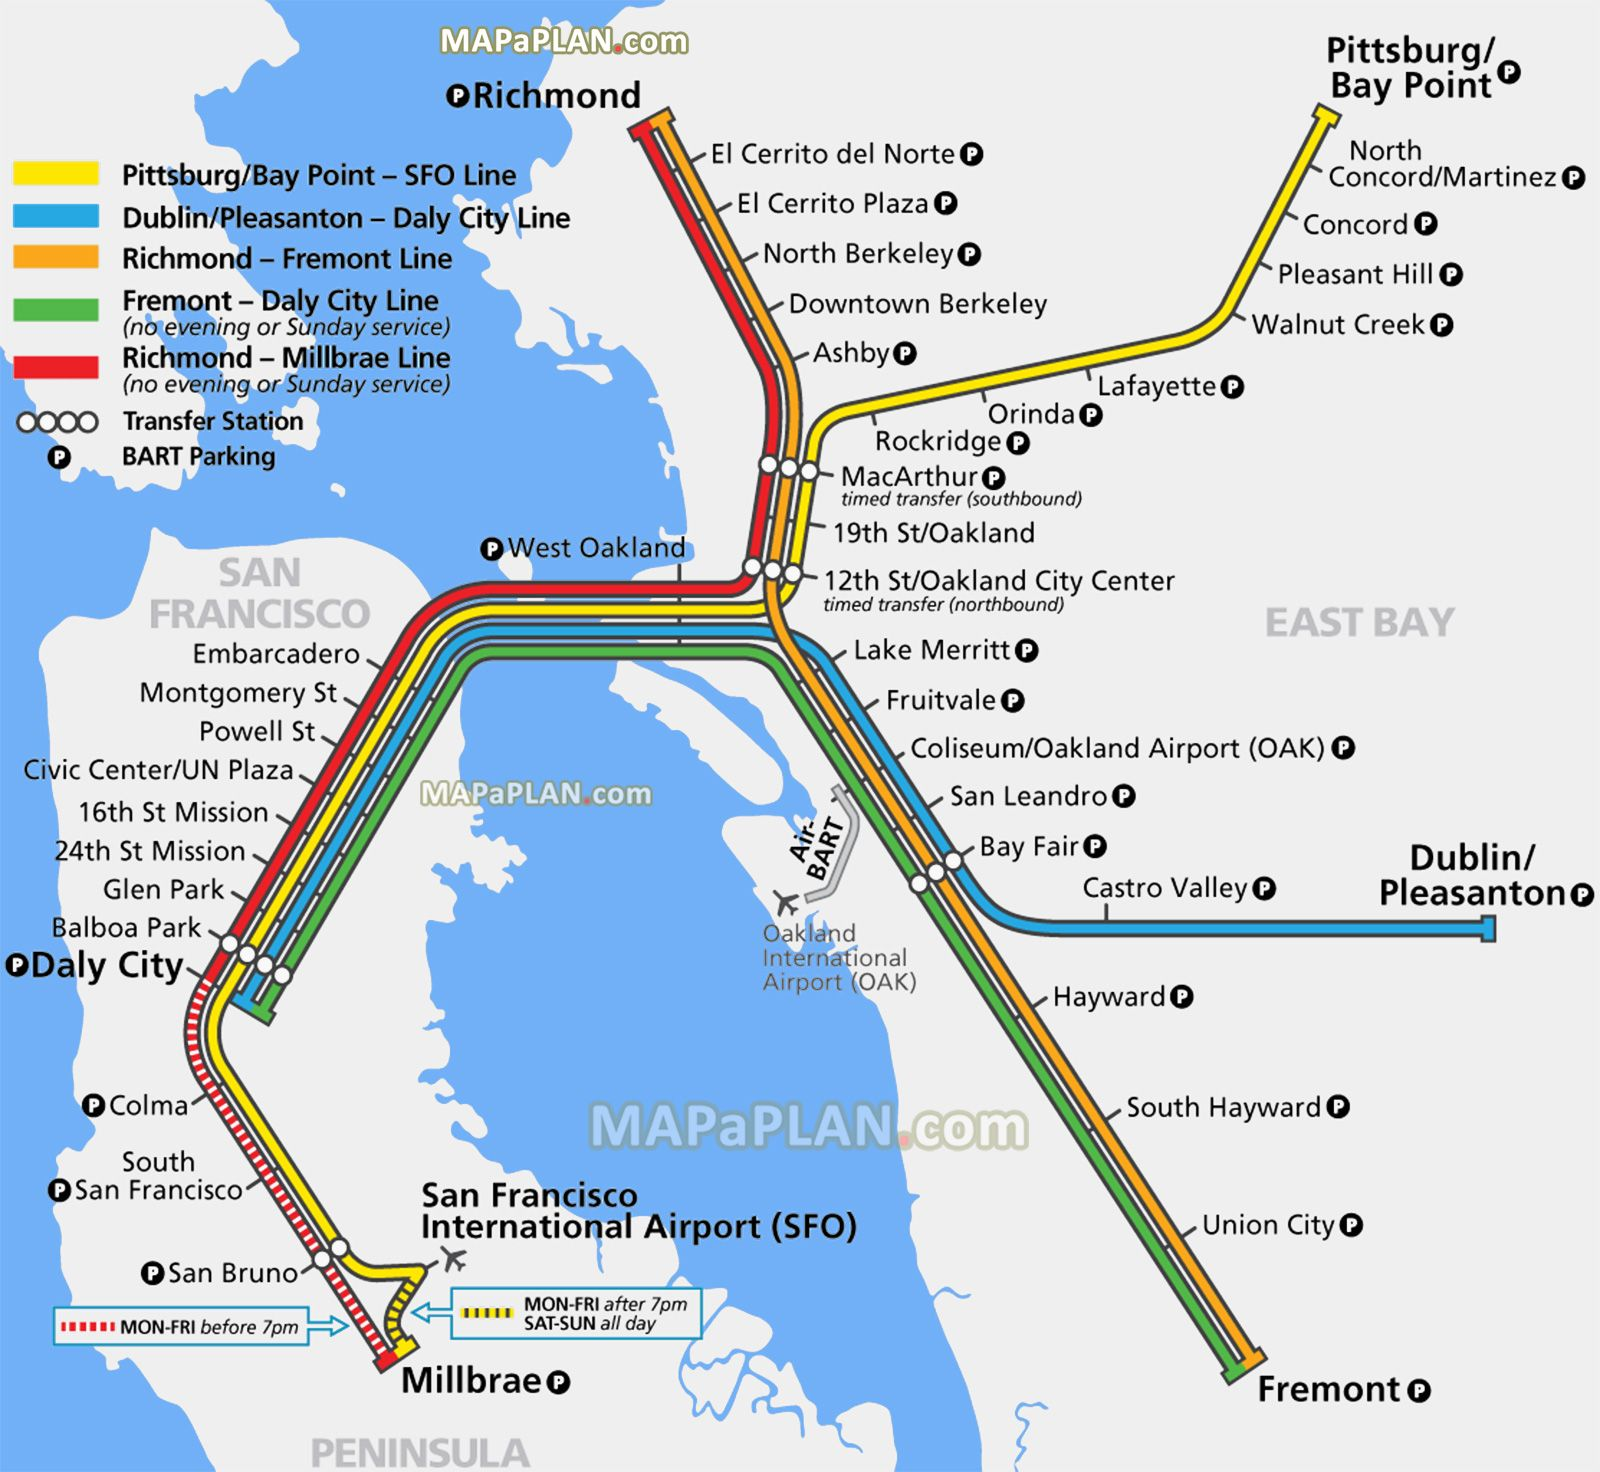 bart san francisco map | World Map | San Francisco | Bart ... San Fran Bart Map on atlanta bart map, sacramento bart map, bart bus map, berkeley bart map, original bart map, walnut creek bart map, bay area bart map, bart system map, oakland bart map, richmond bart map, california bart map, bart muni map, bart station map, pleasanton bart map, east bay bart map, future bart map, bart sfo airport map, los angeles bart map, pittsburgh bart map, dallas bart map,